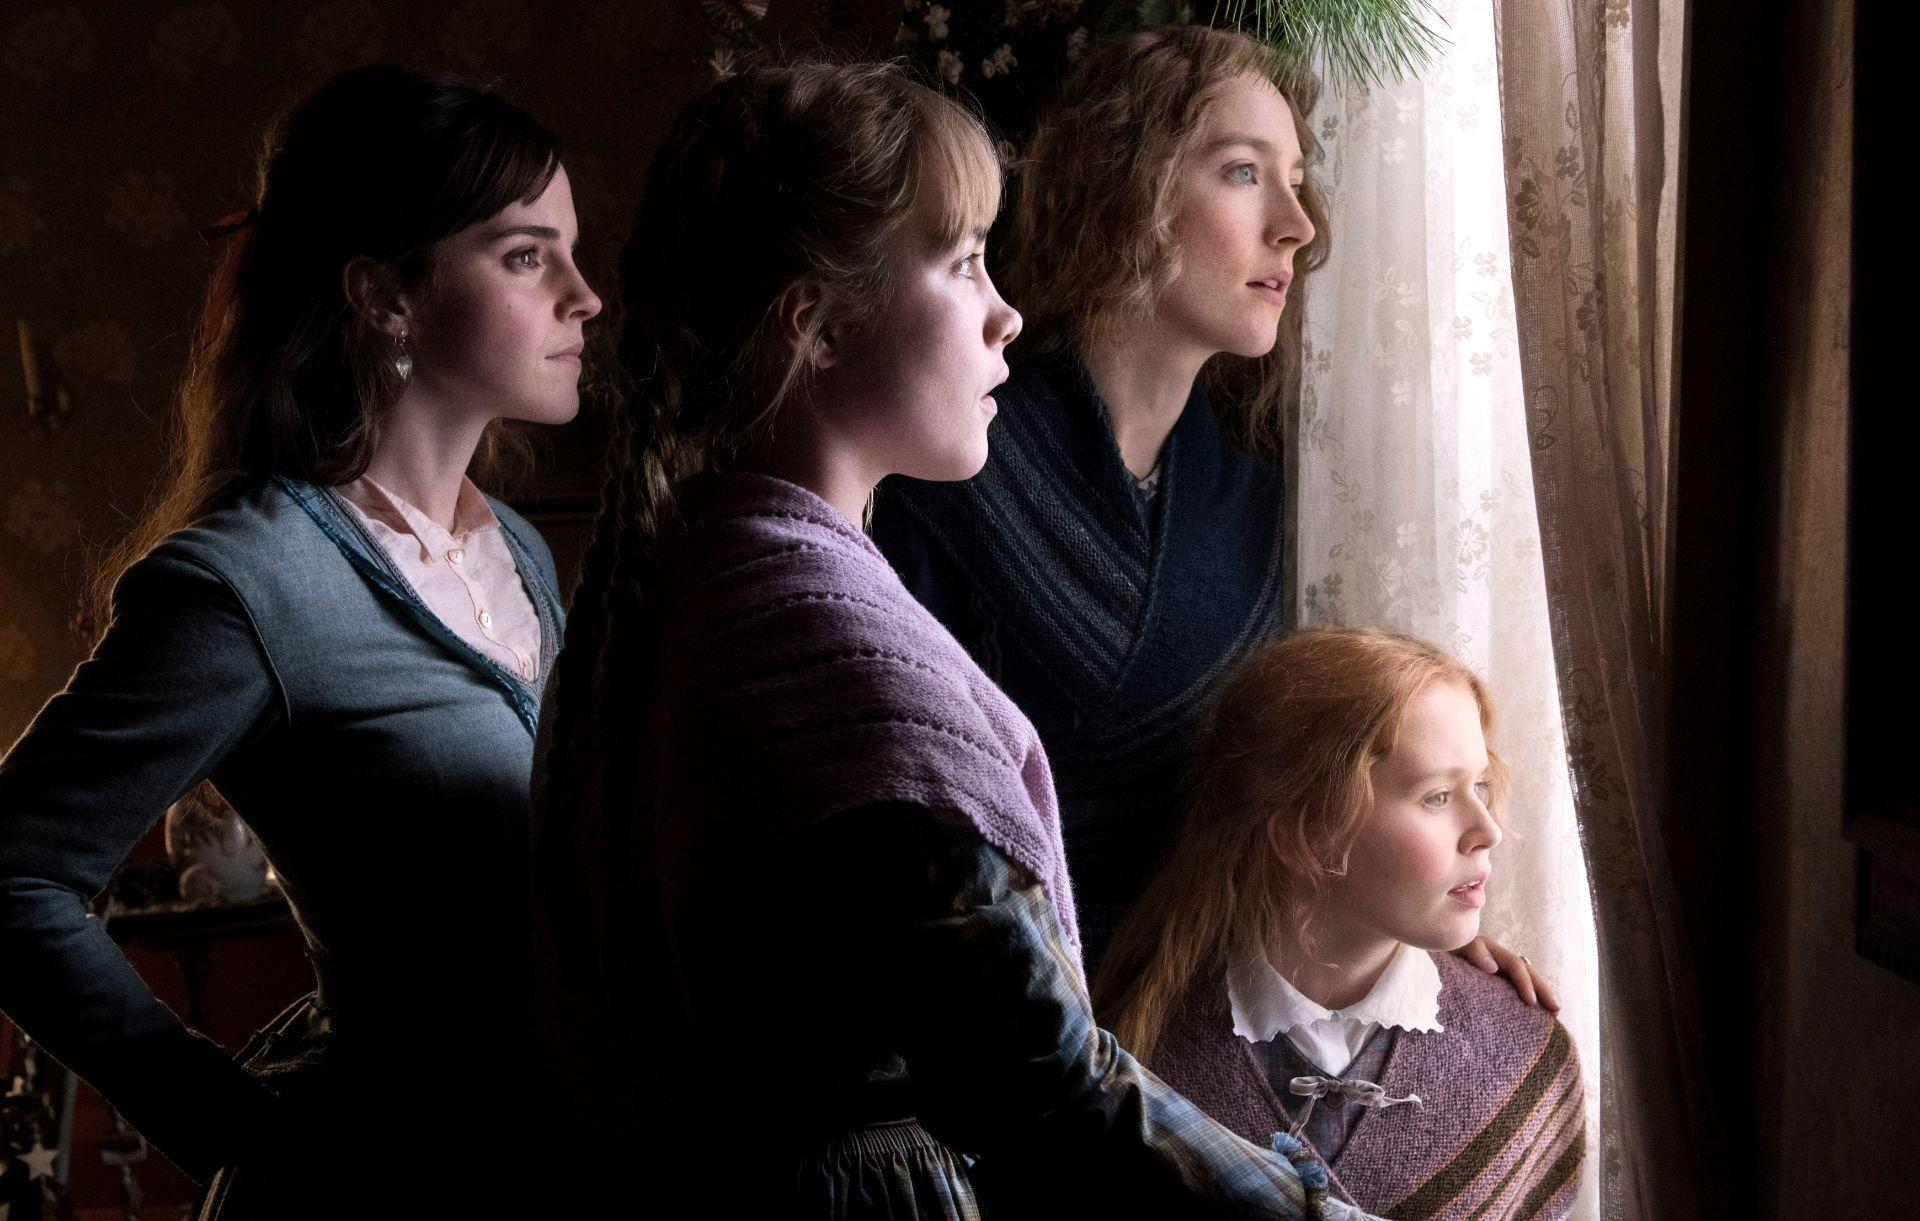 'Little Women' first look: Emma Watson leads an all-star cast for Greta Gerwig's remake